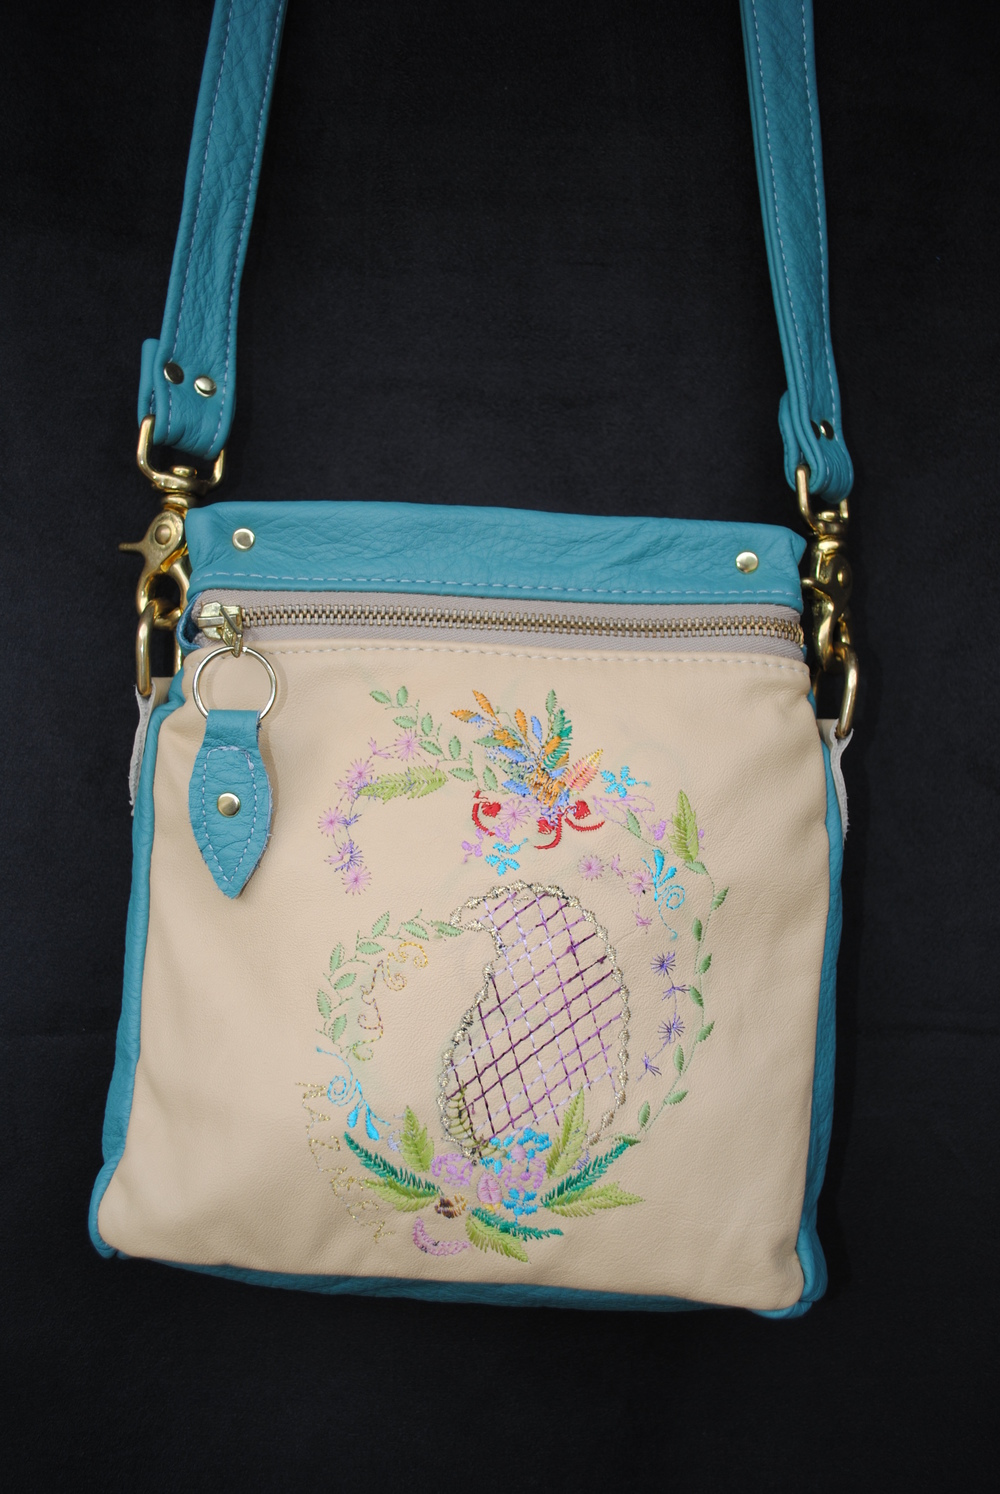 Sophisticated Garden Embroidered Leather in Turquoise and beige